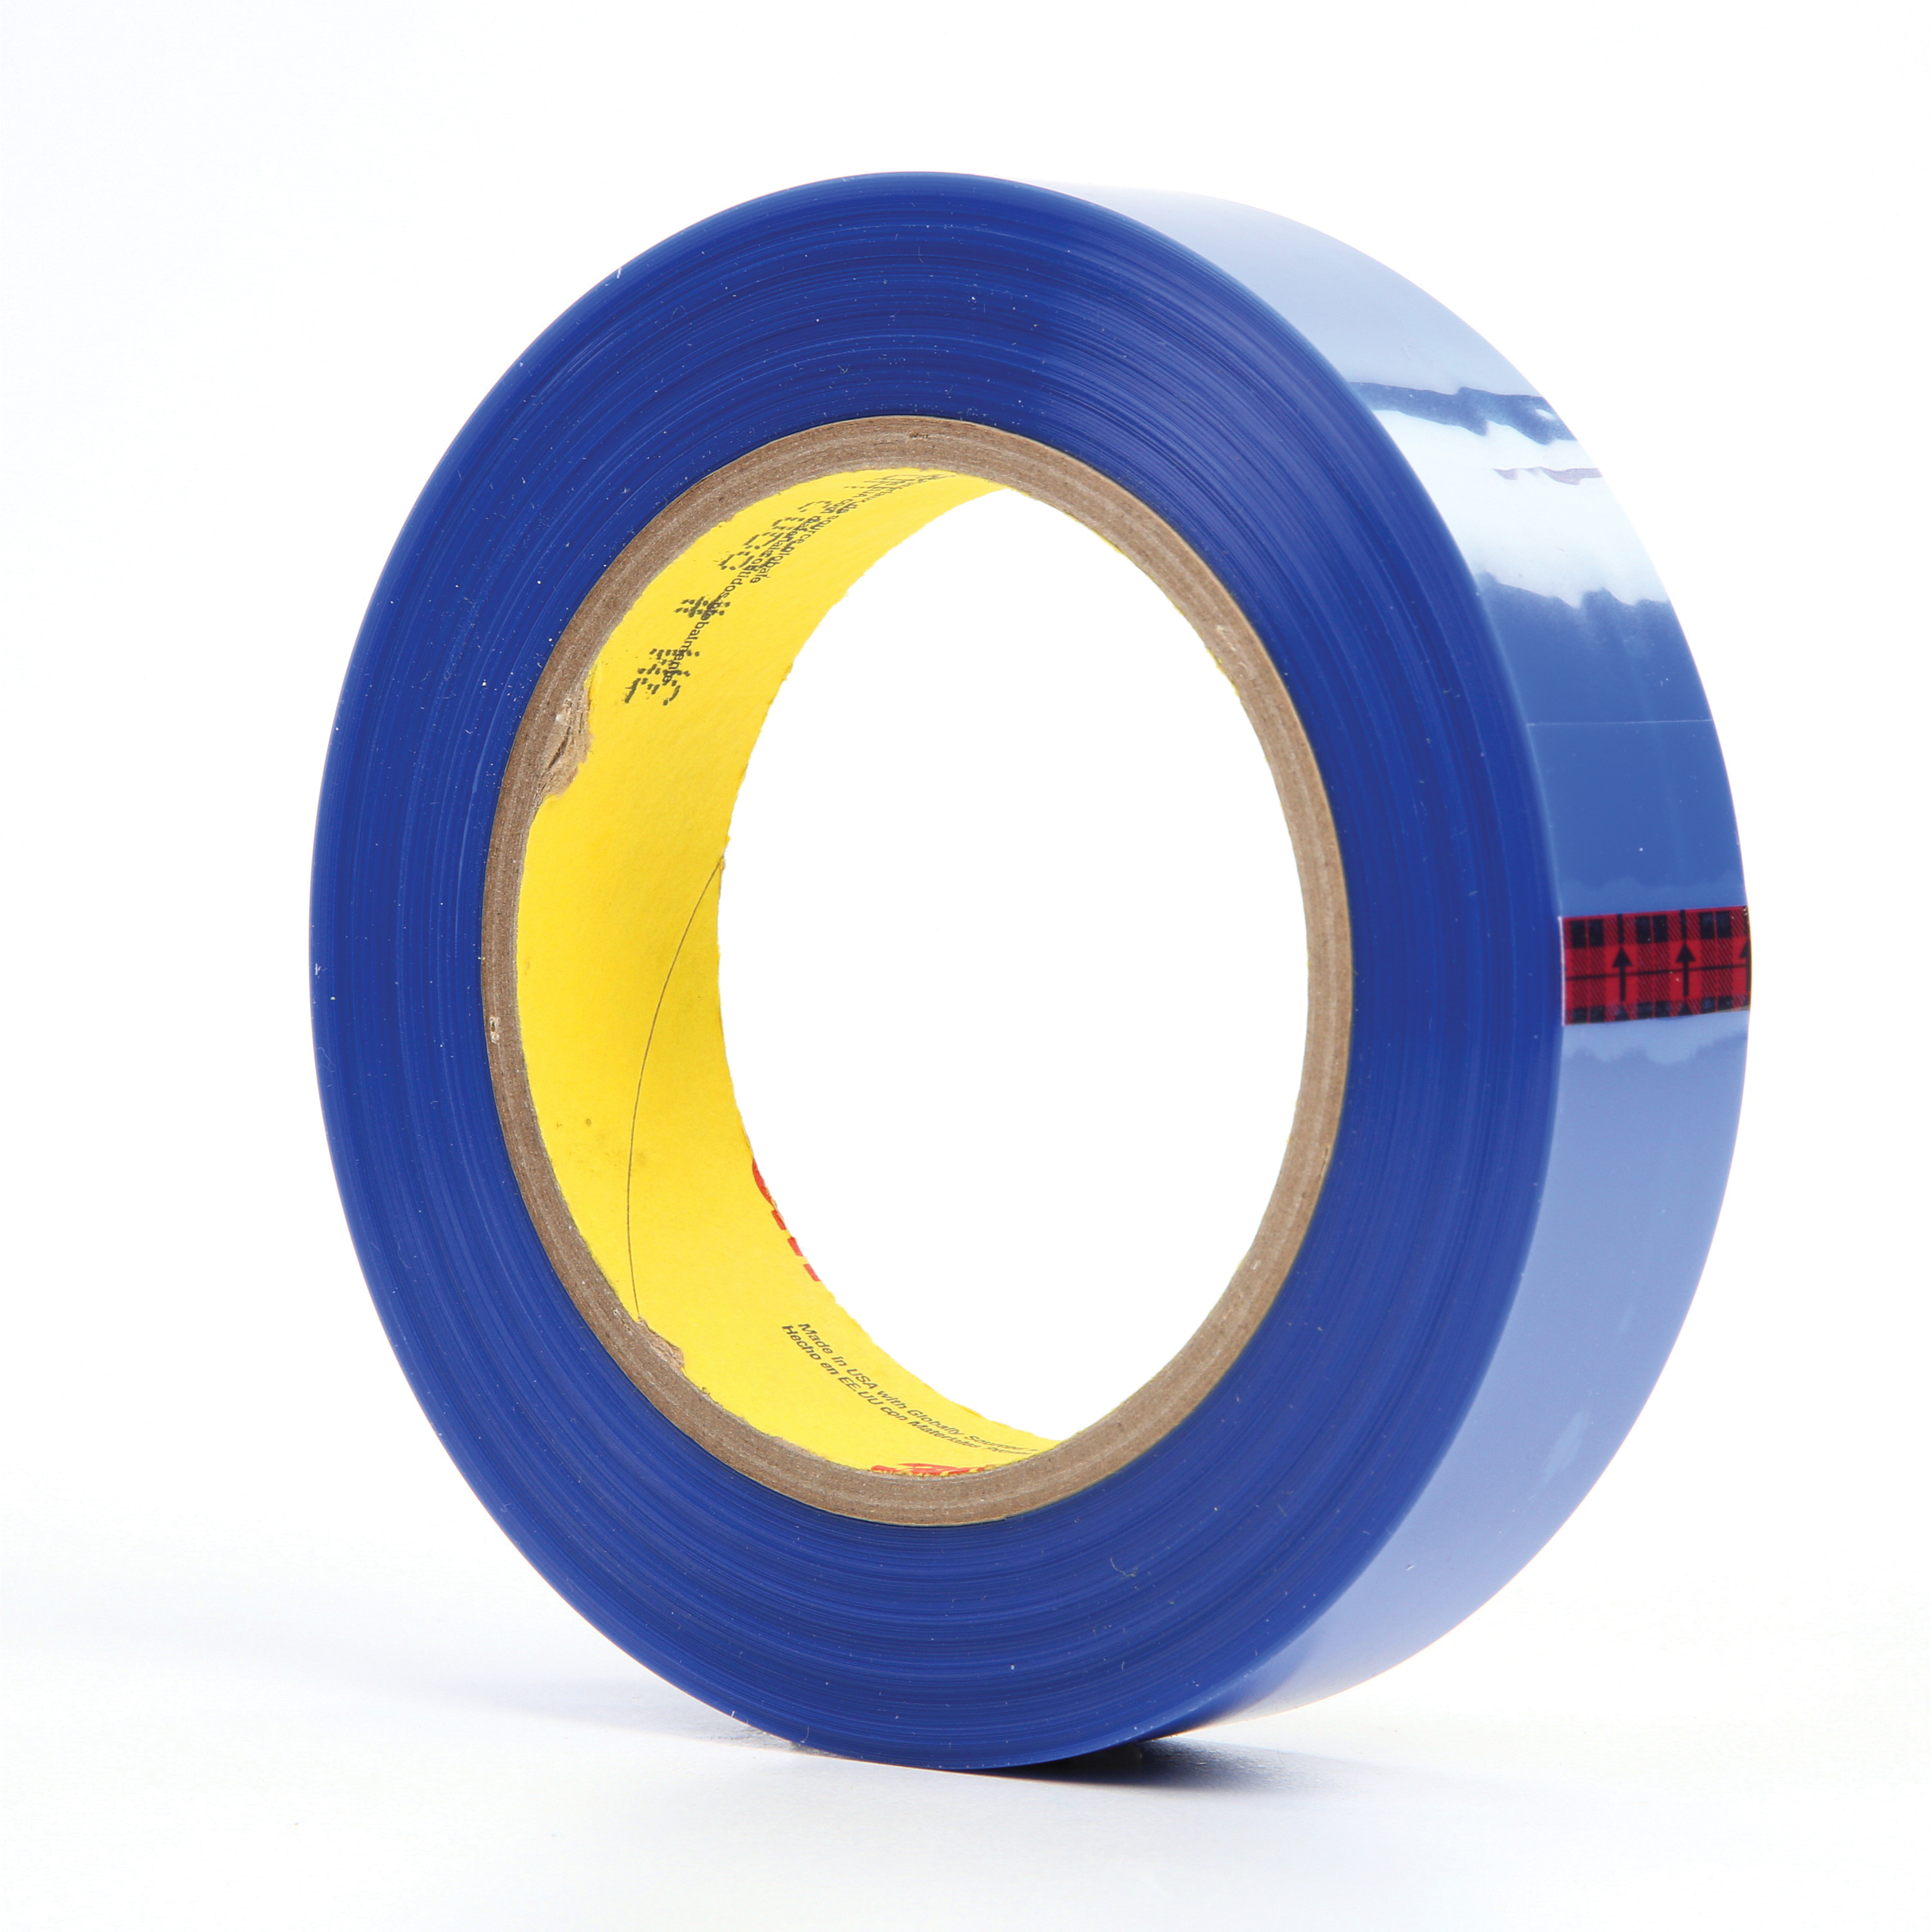 3M™ 051111-92777 General Purpose Masking Tape, 72 yd L x 1 in W, 3.5 mil THK, Silicon Adhesive, Polyester Backing